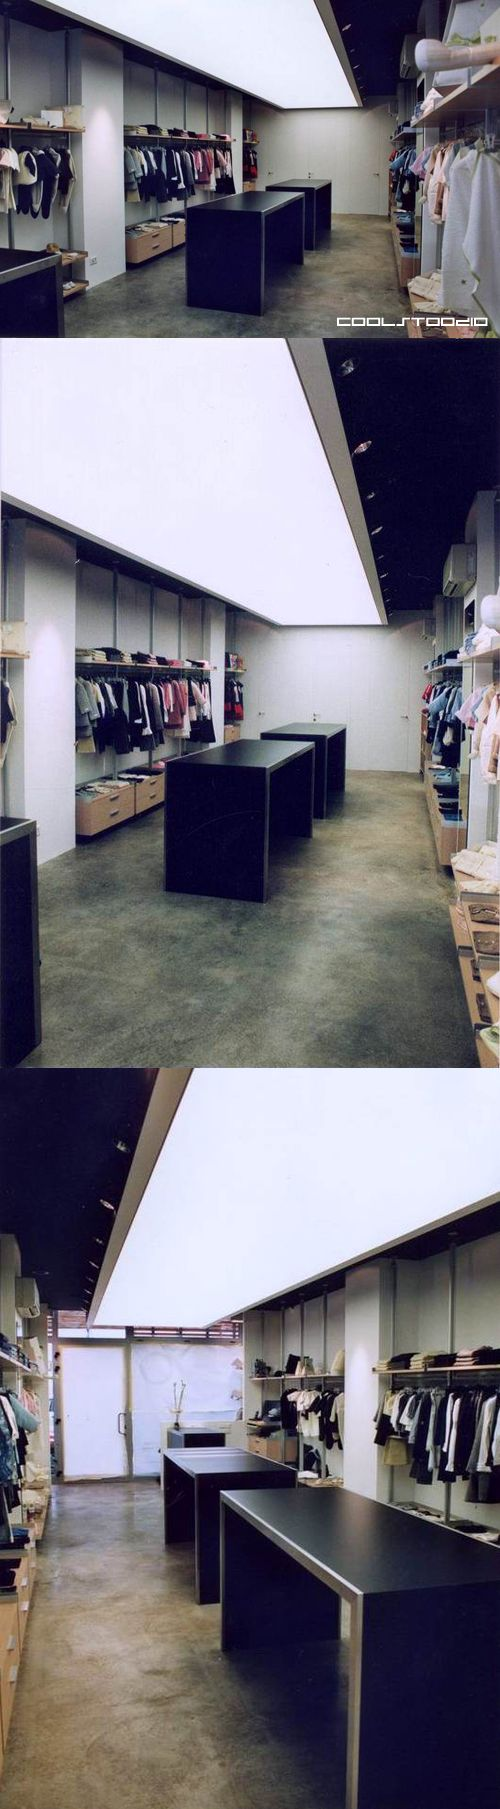 Alluminio store - Furniture for a clothing store.